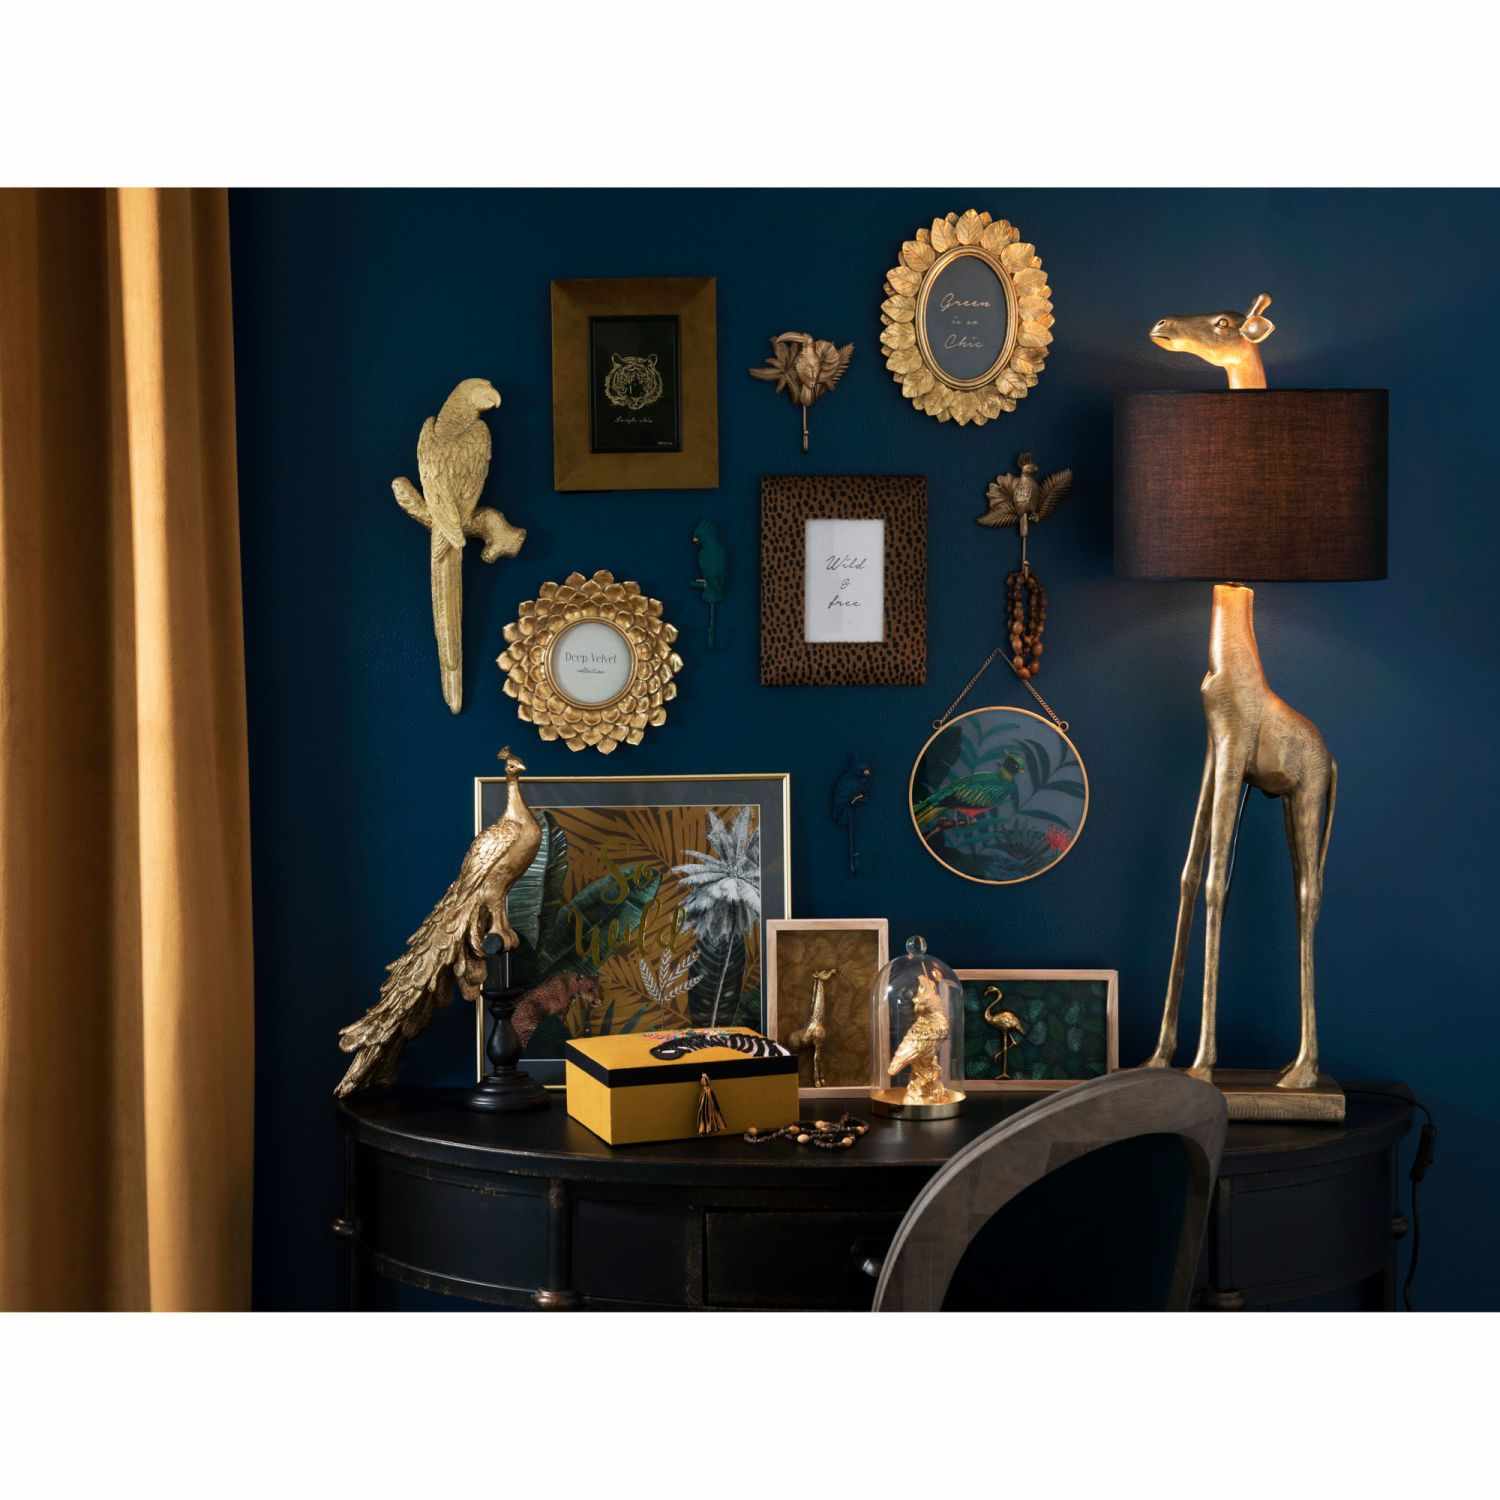 Maison Du Monde Perroquet objets déco | dark blue rooms, black decor, glamour decor